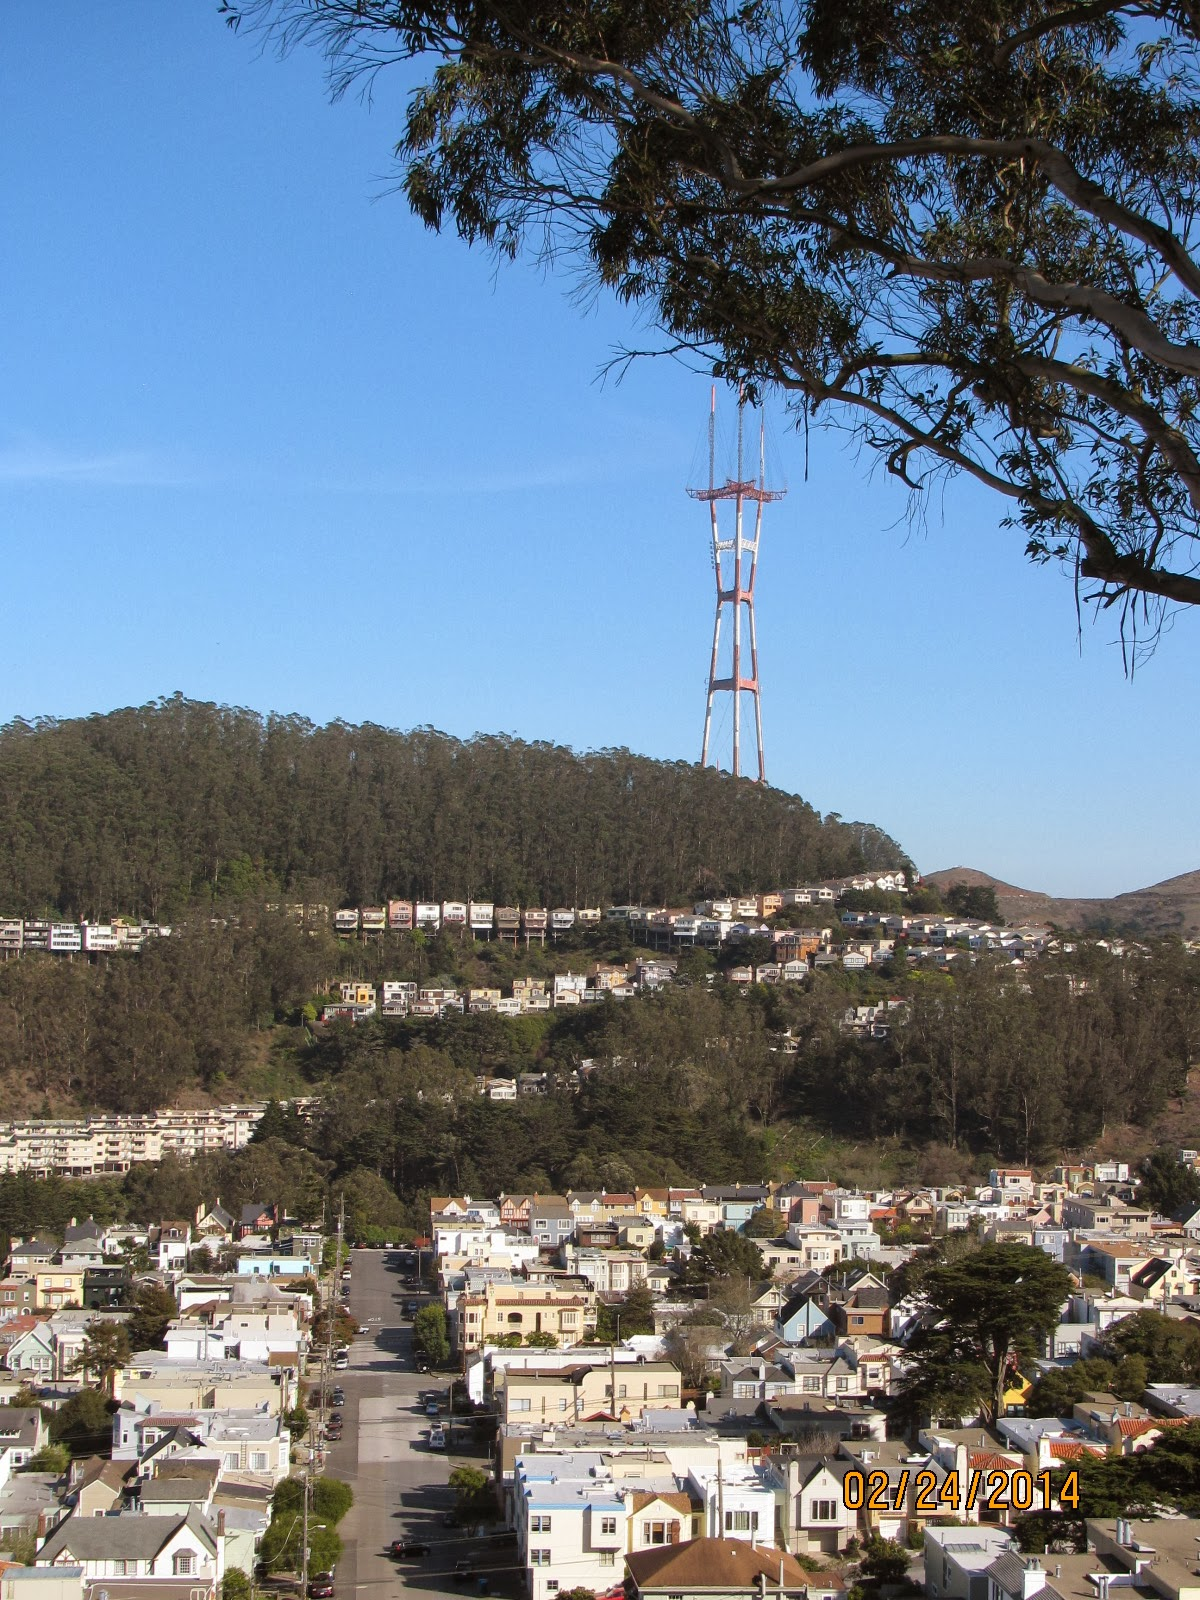 Grand View Park- Sutro Tower to the Right